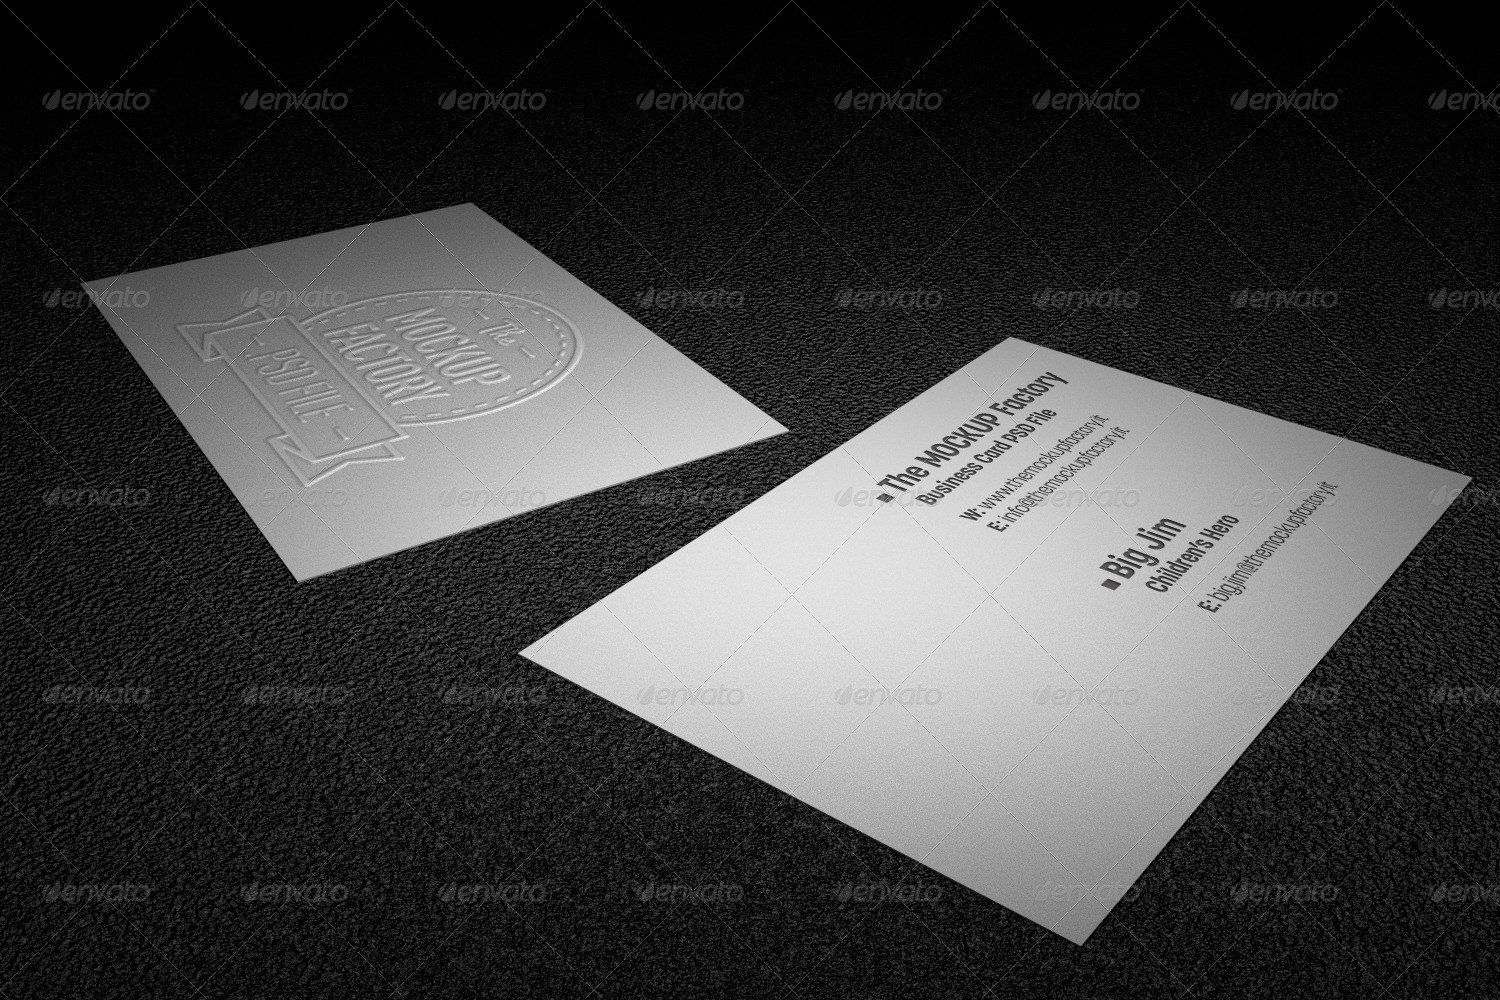 Embossed Business Card Mockup Realistic Embossed Business Card Mockup by